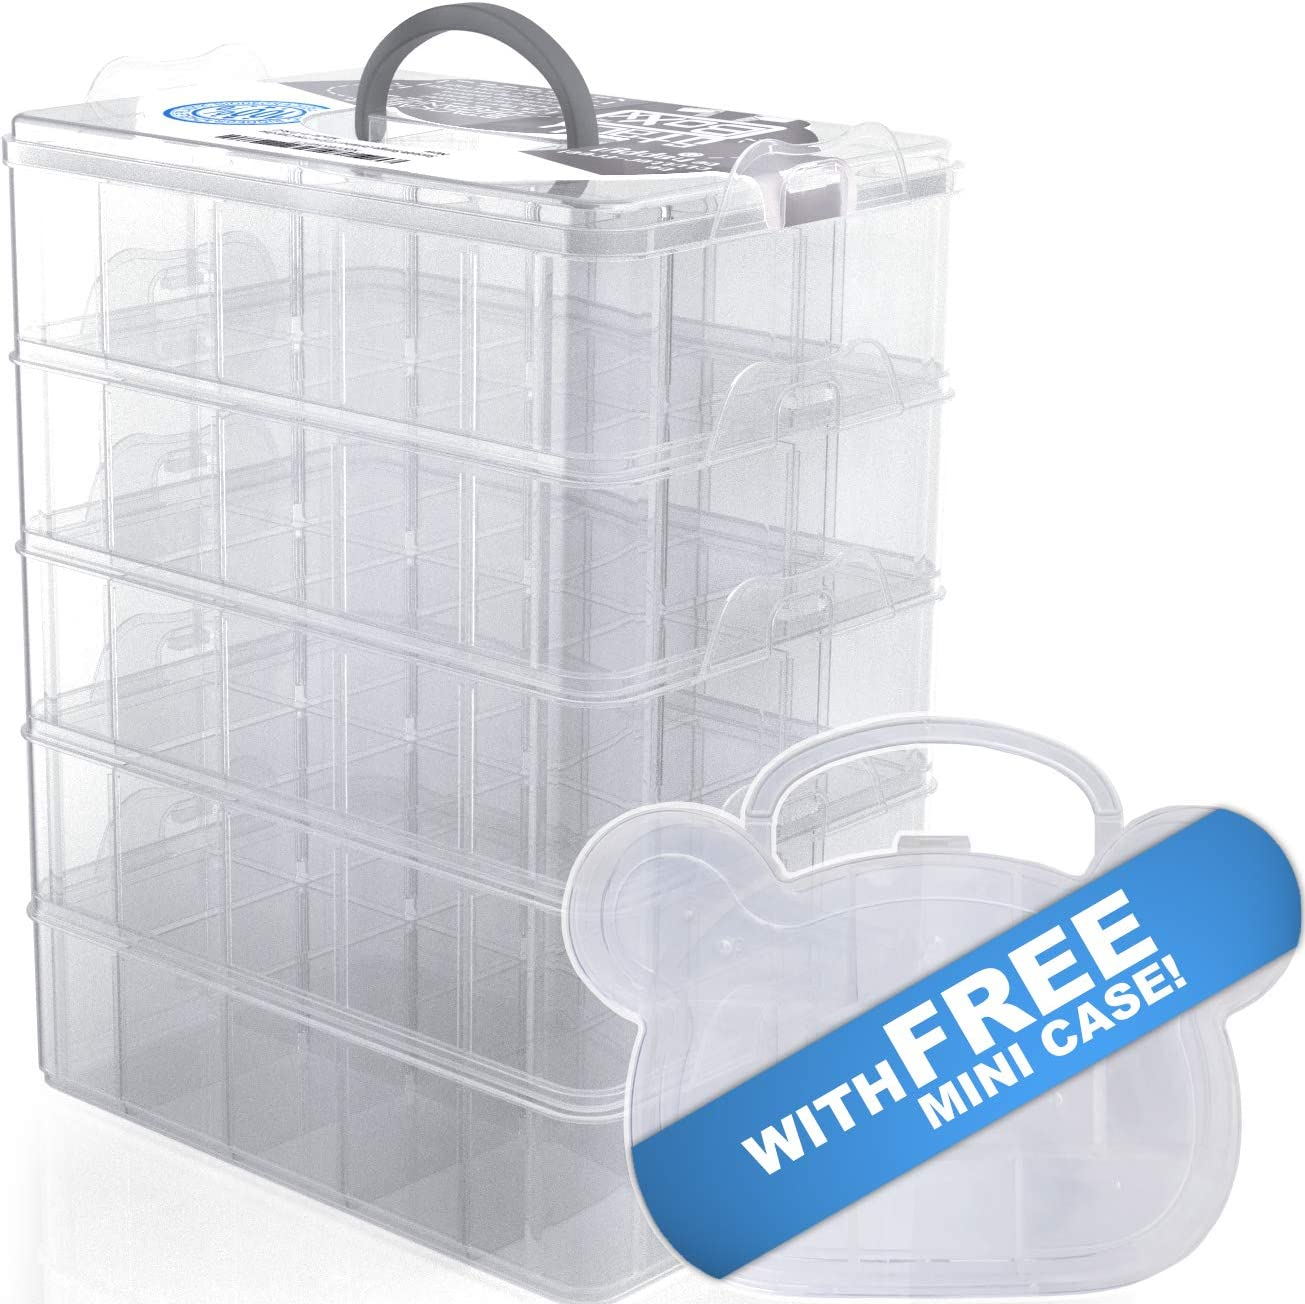 Stack Boxx Stackable Organizer and Storage Container (White) +Free Case | Be Clutter-Free, Be Happy! 5 Layers w/Handle -Perfect Solution for Kids Toys, Art Crafts, Jewelry, School & Office Supplies